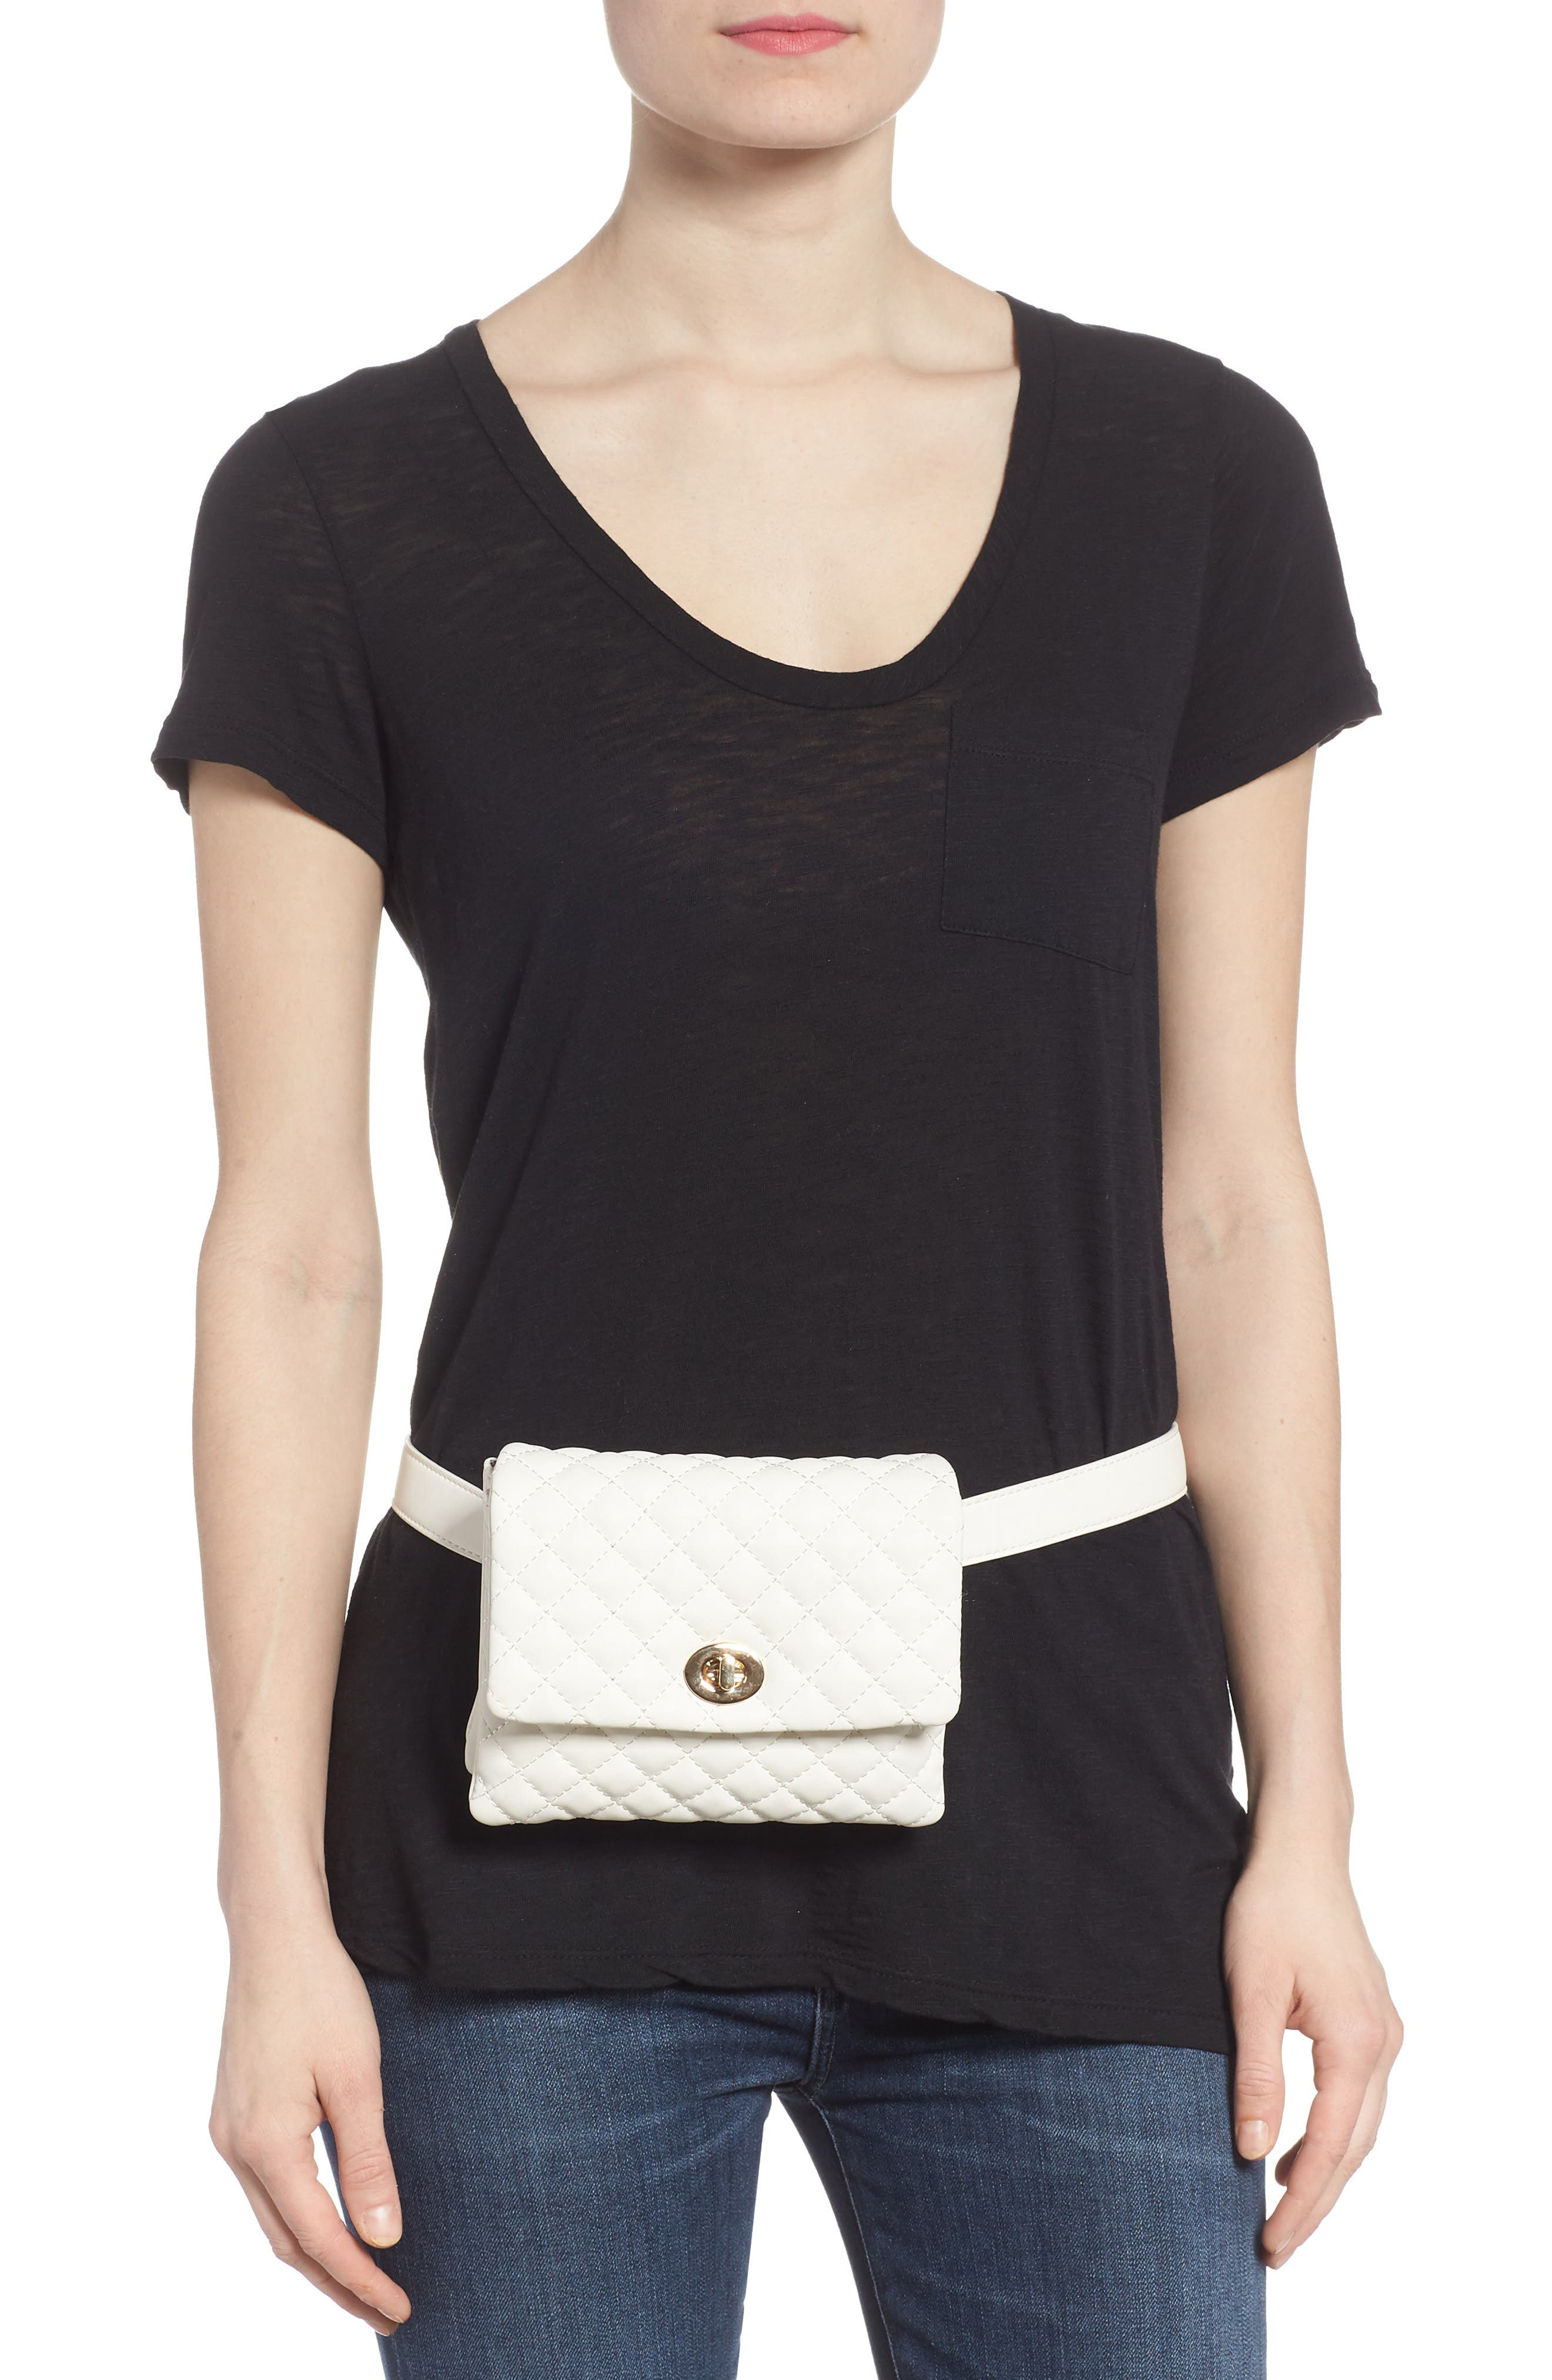 Mali + Lili Quilted Vegan Leather Convertible Belt Bag,                             Alternate thumbnail 2, color,                             WHITE